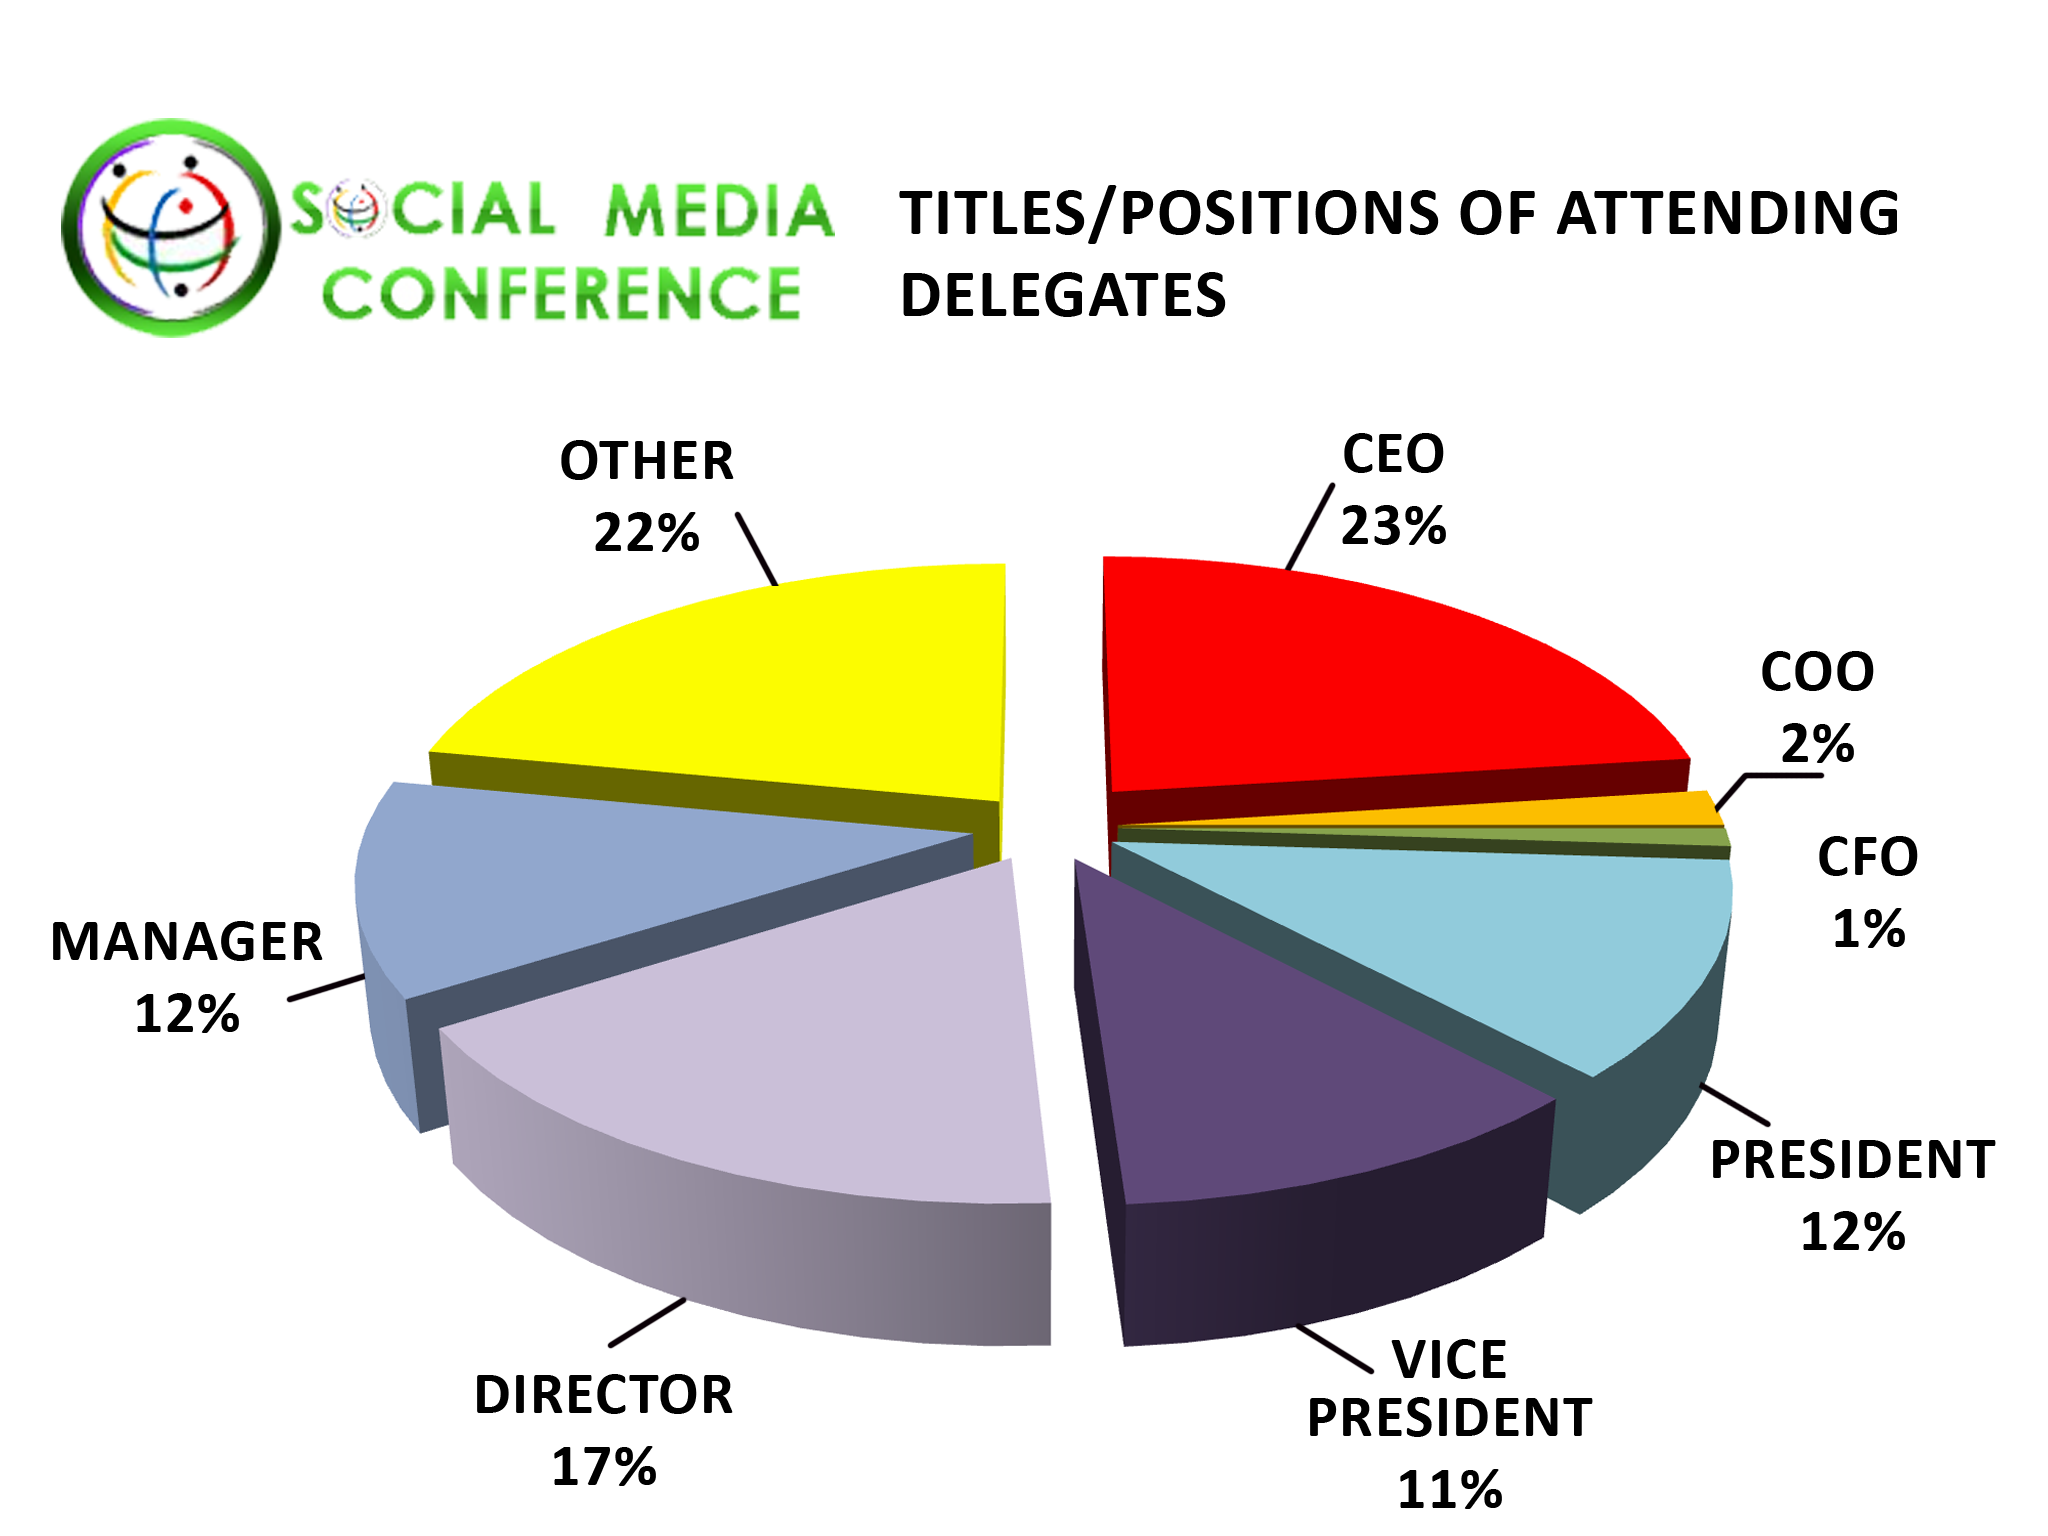 Social Networking Conference Delegate Titles/Positions